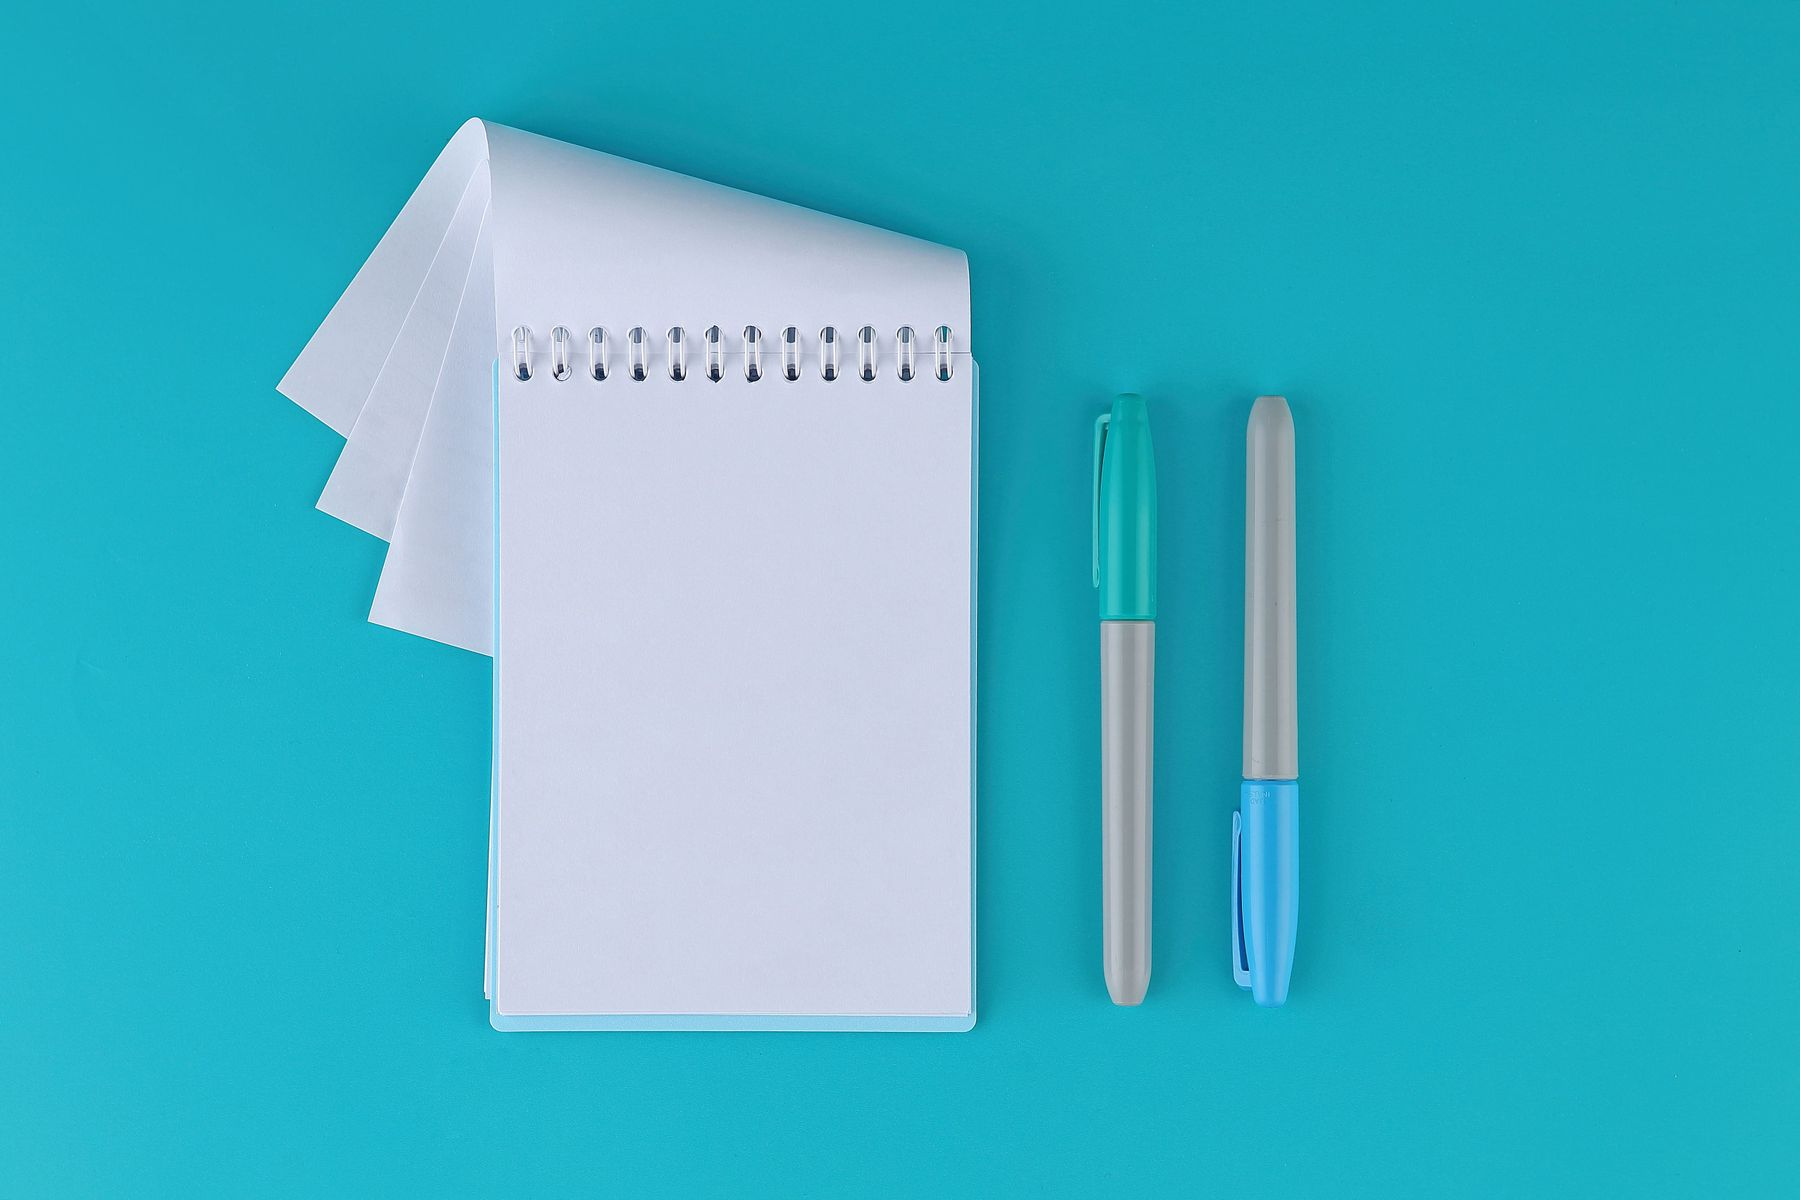 Notepad with two blue pens on blue table